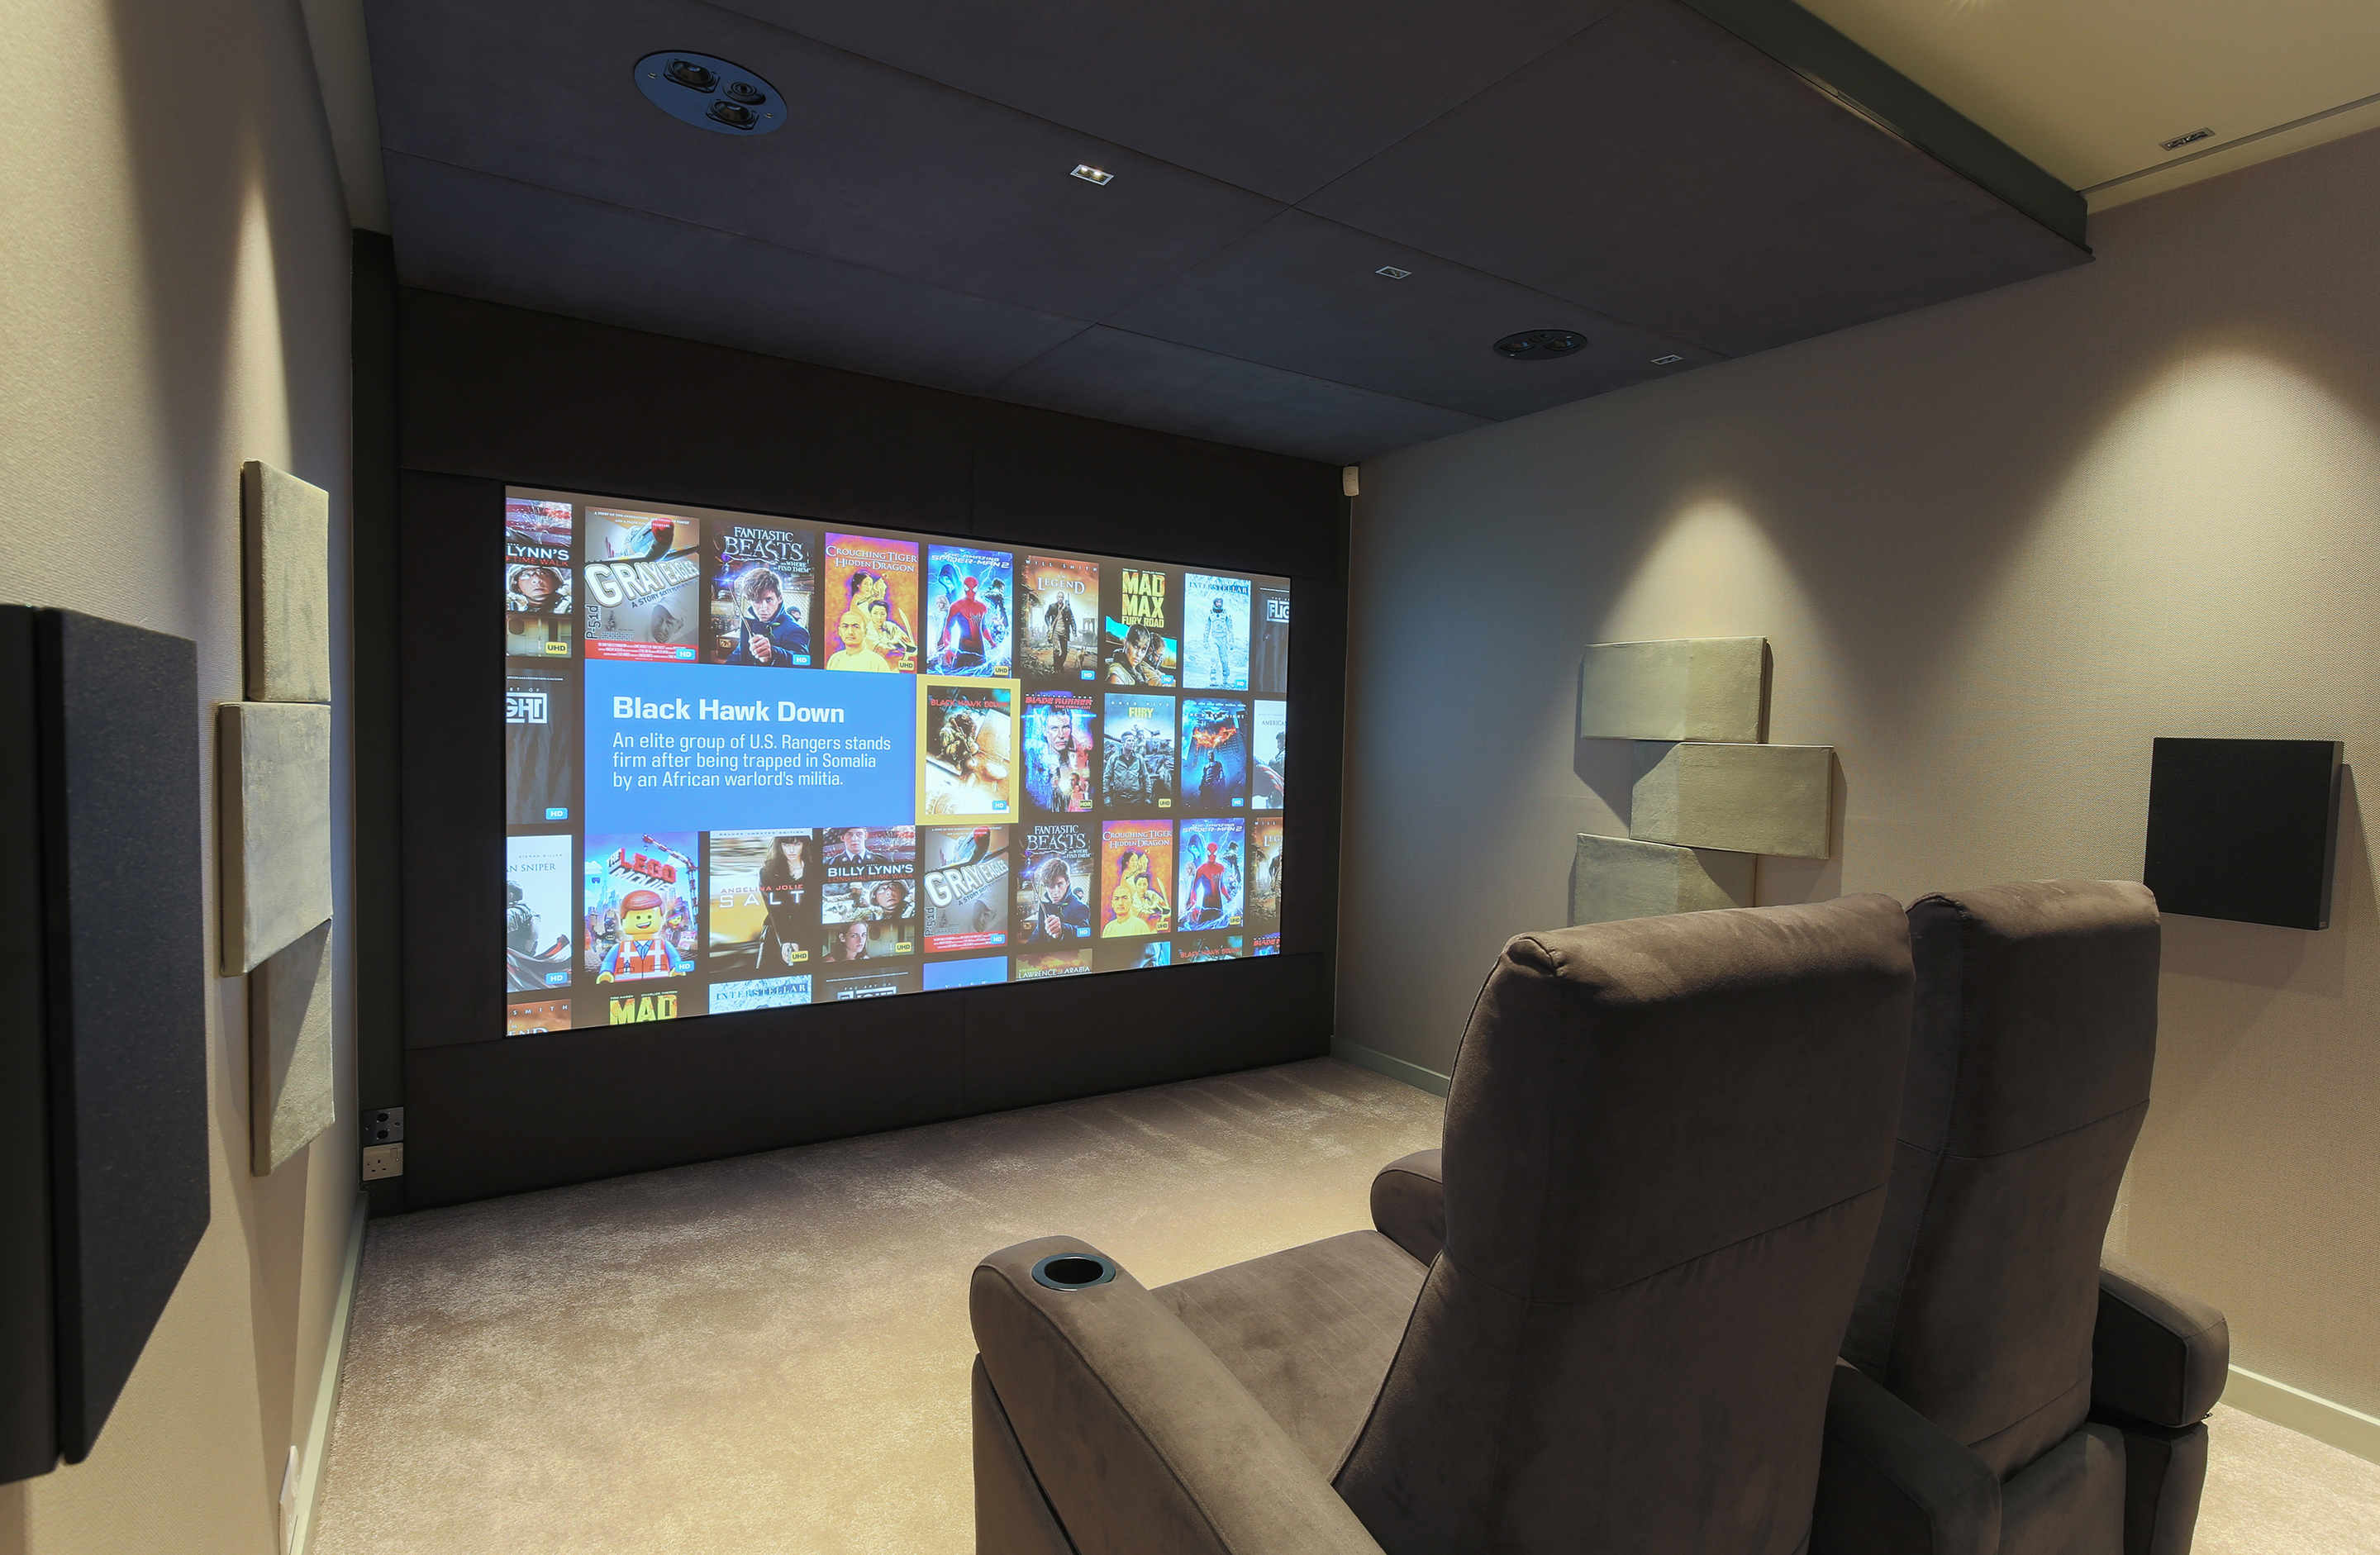 Kaleidescape home cinema system